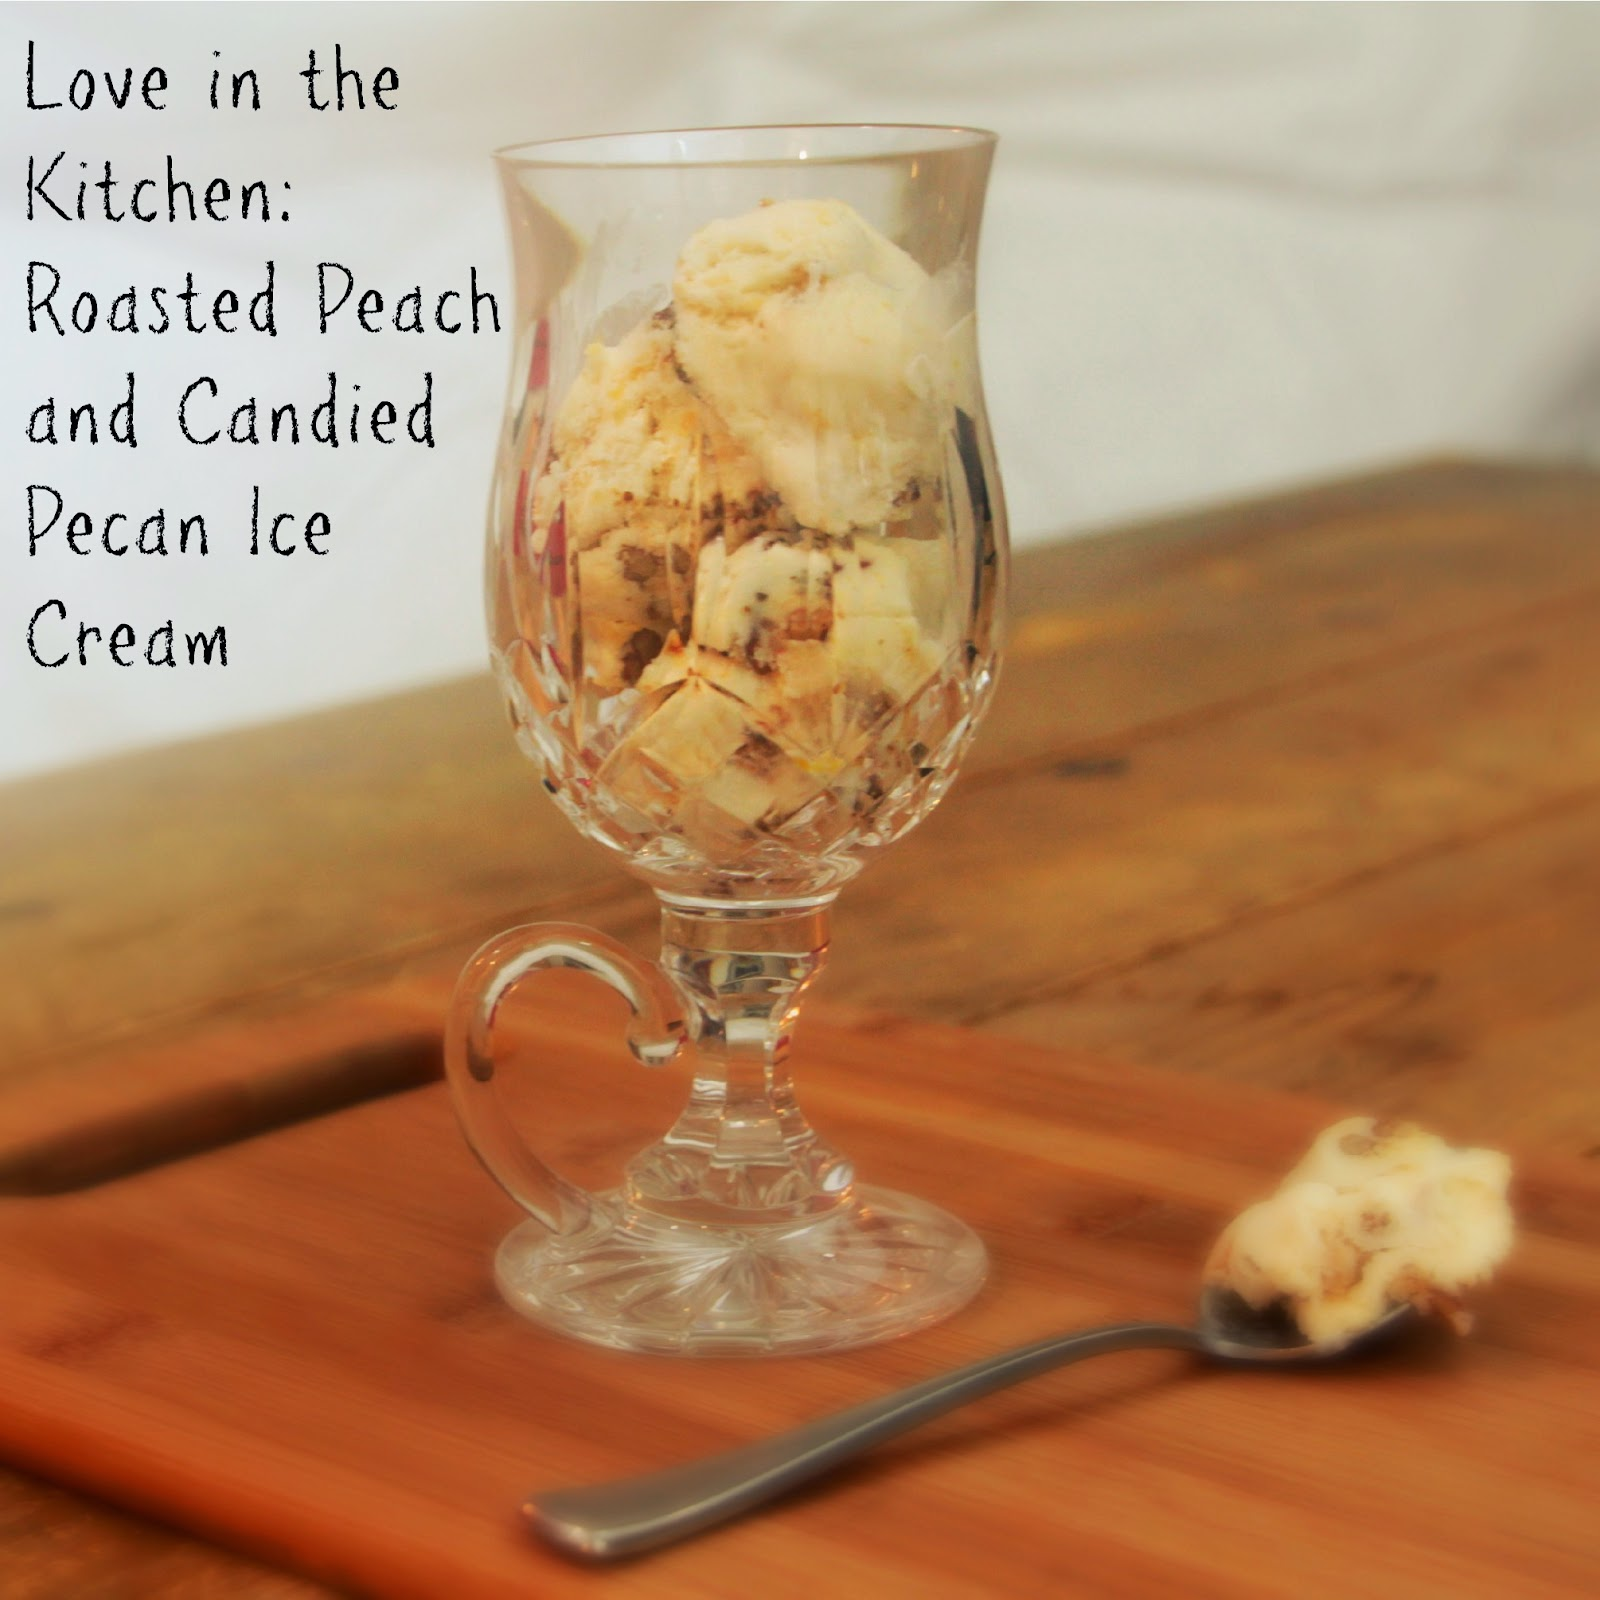 Roasted Peach and Candied Pecan Ice Cream